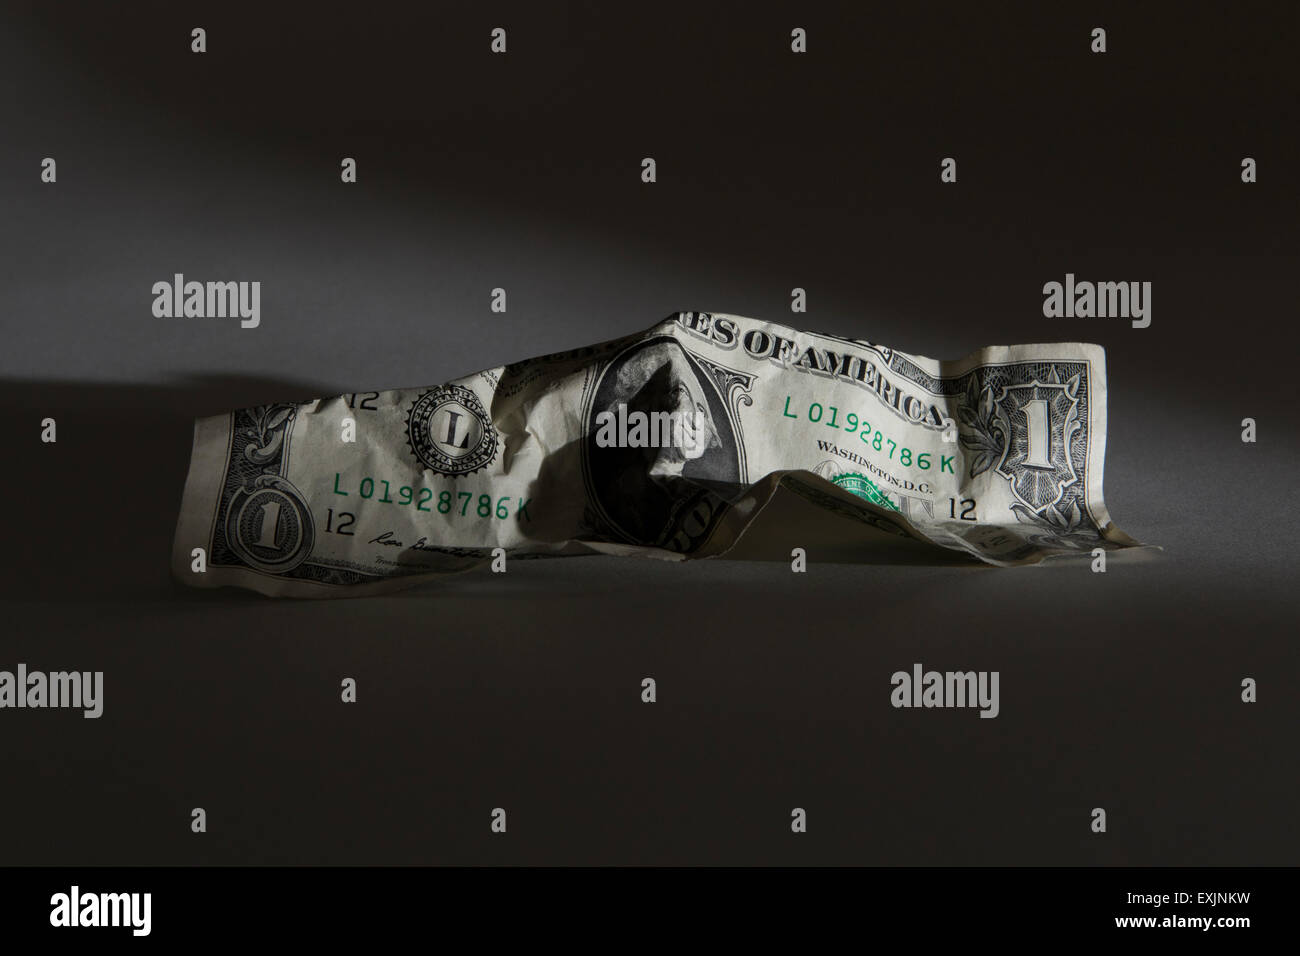 Crumpled American dollar bill on a black background - Stock Image